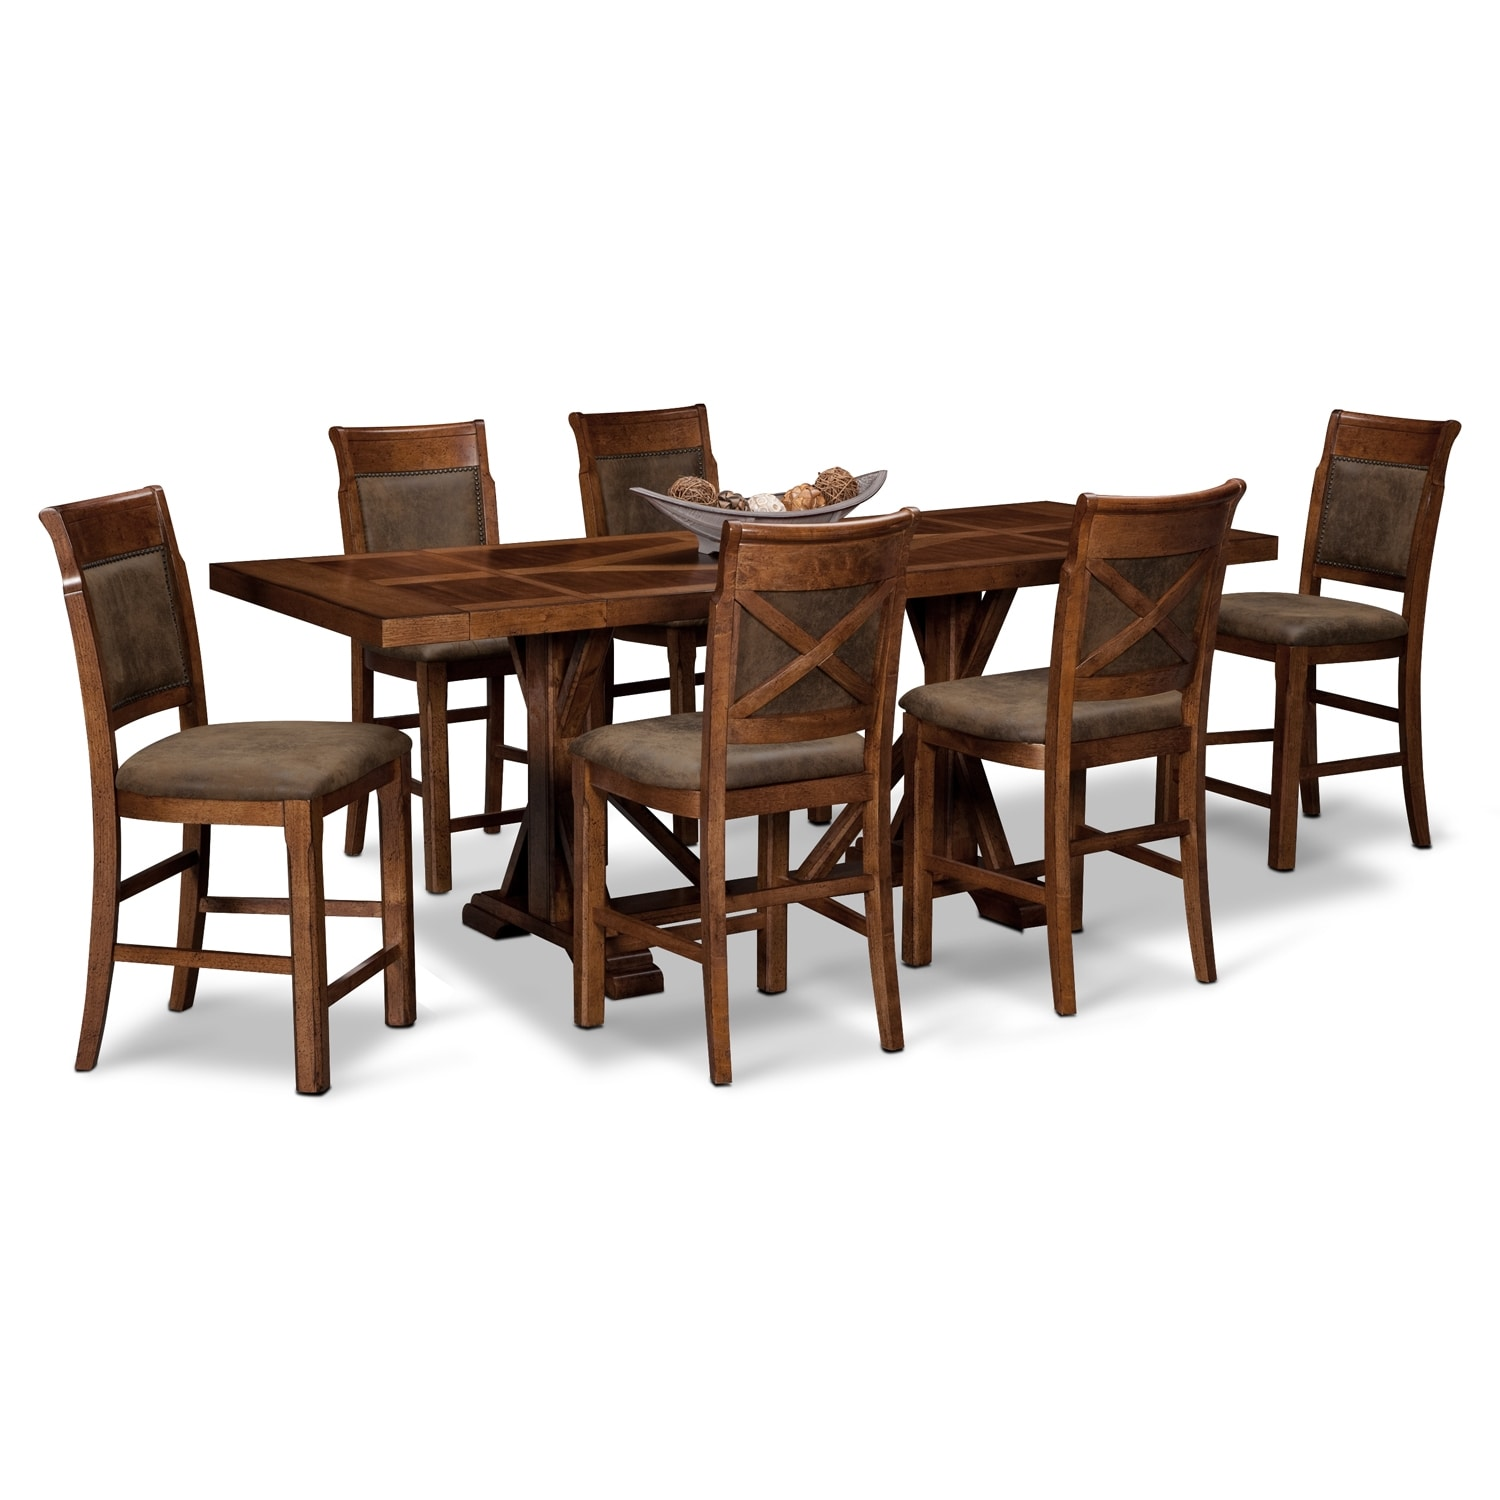 Austin Walnut 7 Pc. Counter-Height Dining Room